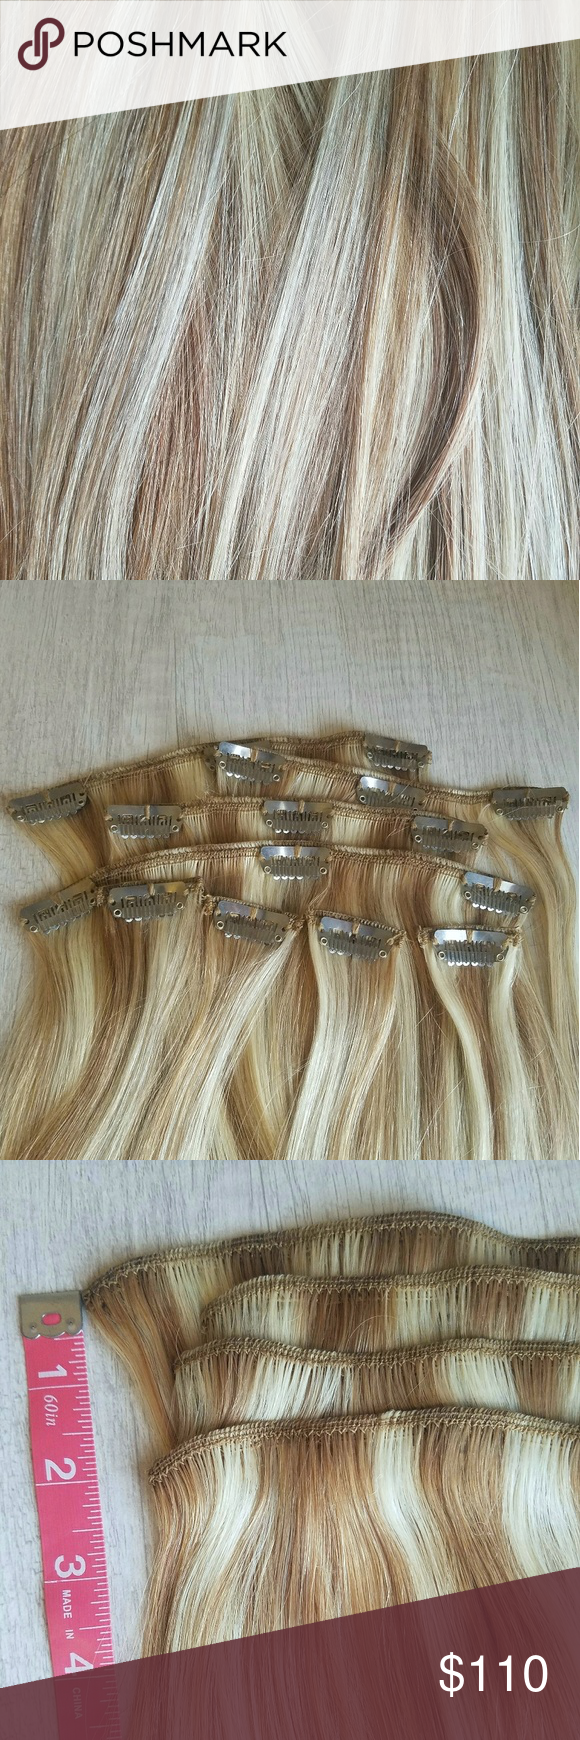 Euronext 16 Inch Clip In Human Hair Extensions Euronext Brand 16